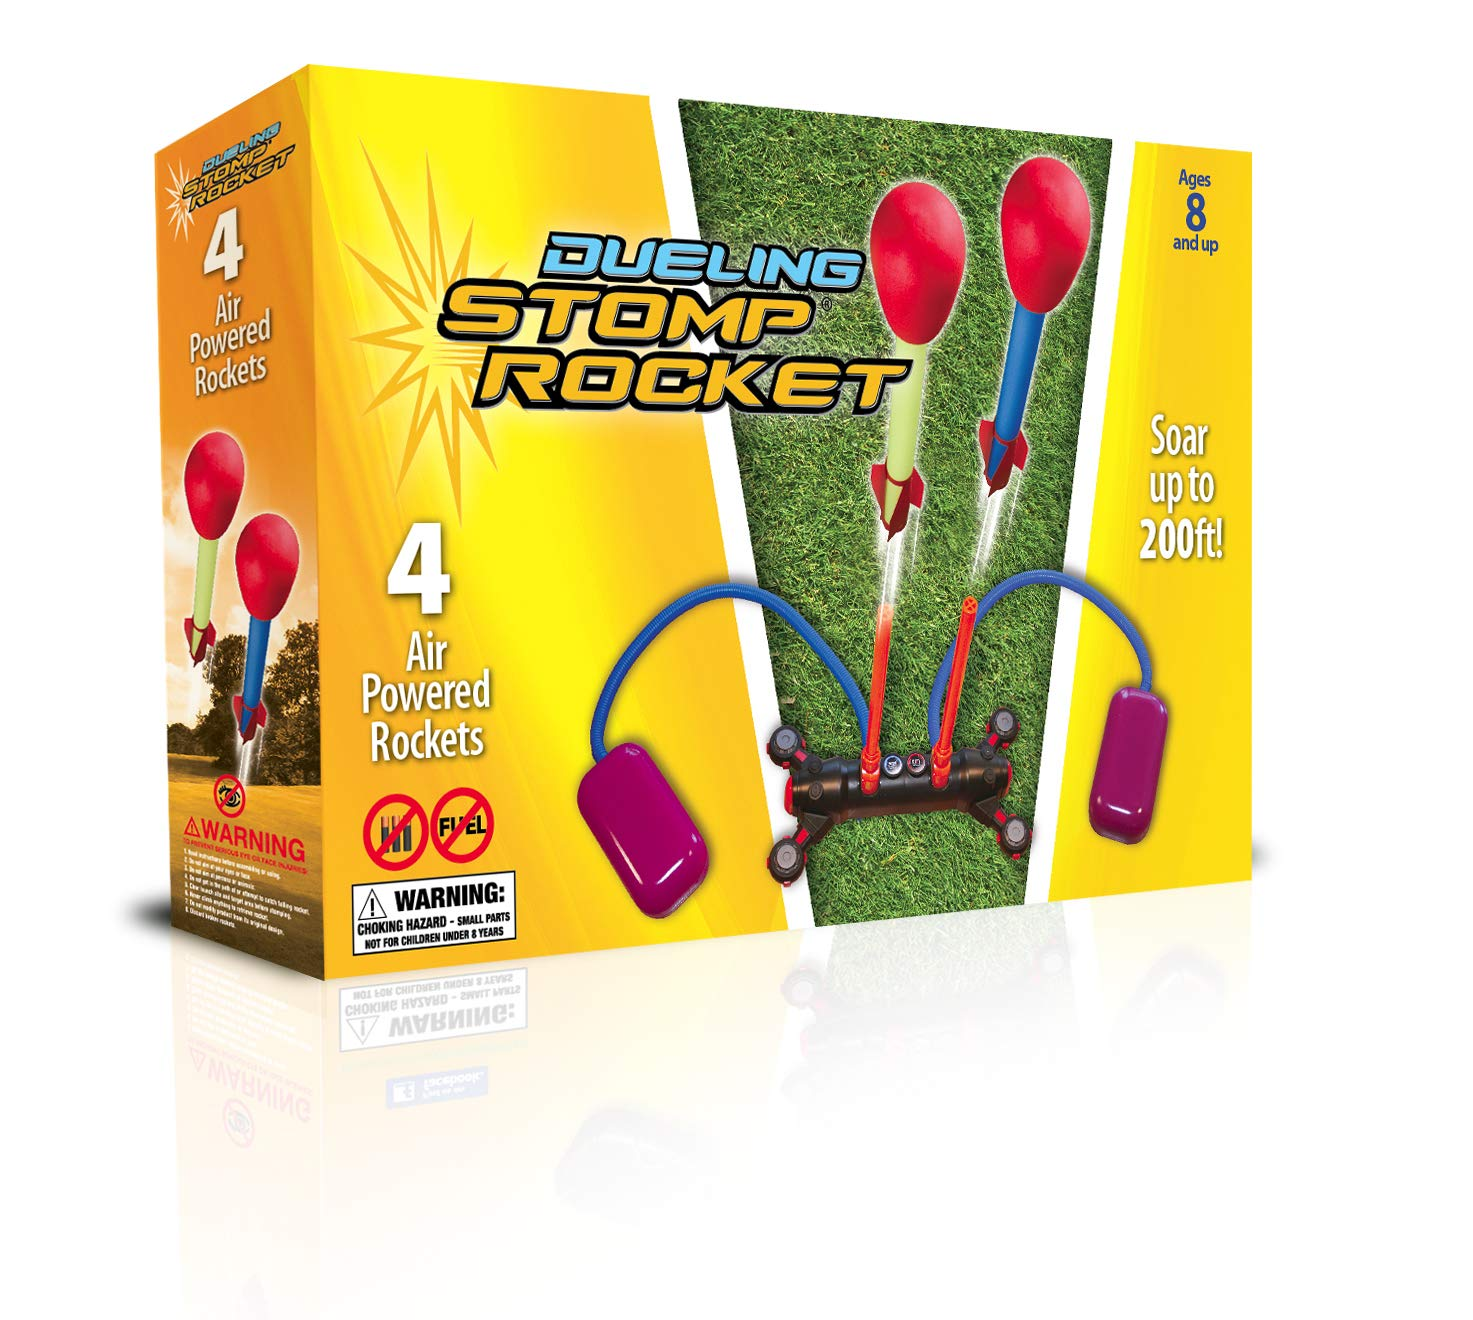 Stomp Rocket Dueling Rockets, 4 Rockets and Rocket Launcher - Outdoor Rocket Toy Gift for Boys and Girls Ages 6 Years and Up - Great for Outdoor Play with Friends in The Backyard and Parks by Stomp Rocket